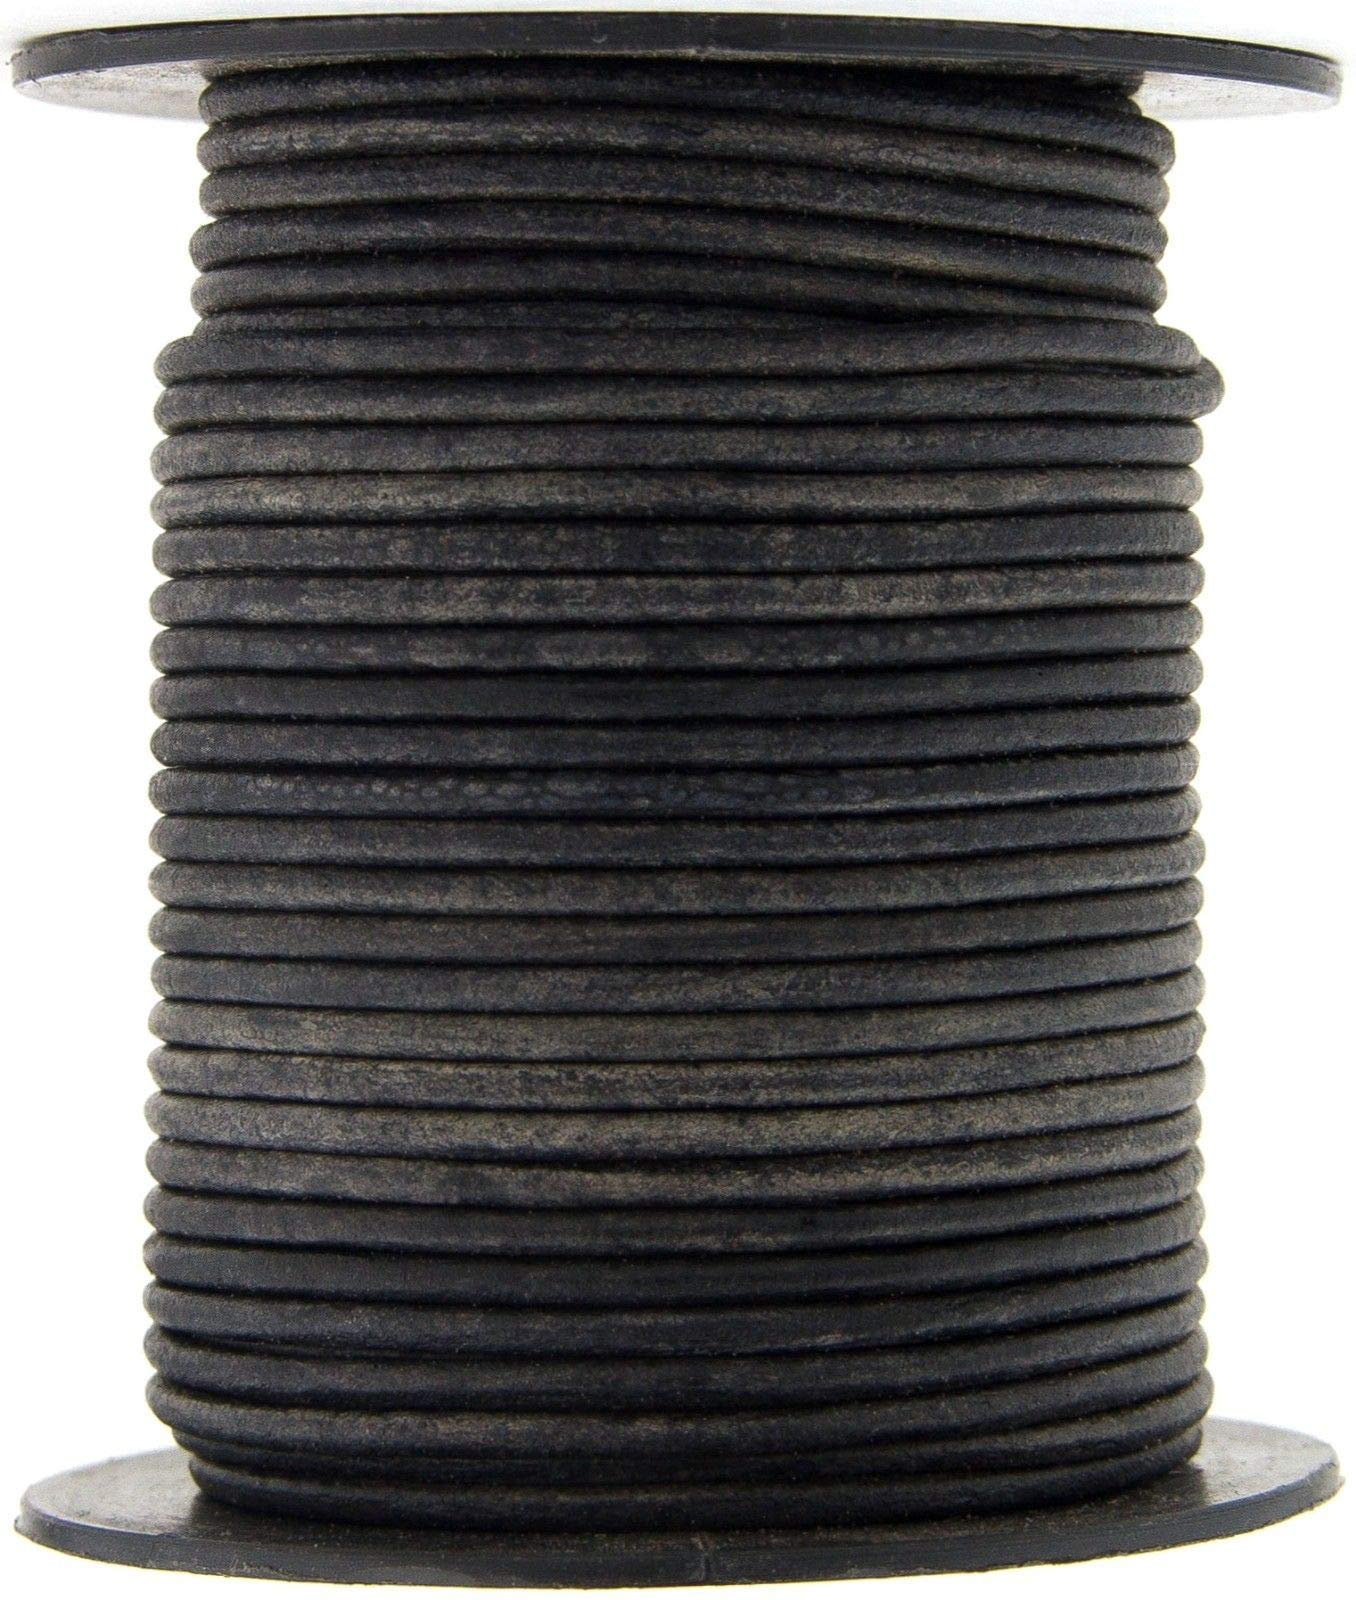 Gray Distressed Natural Dye Round Leather Cord 1.5mm 50 meters-54 Yards